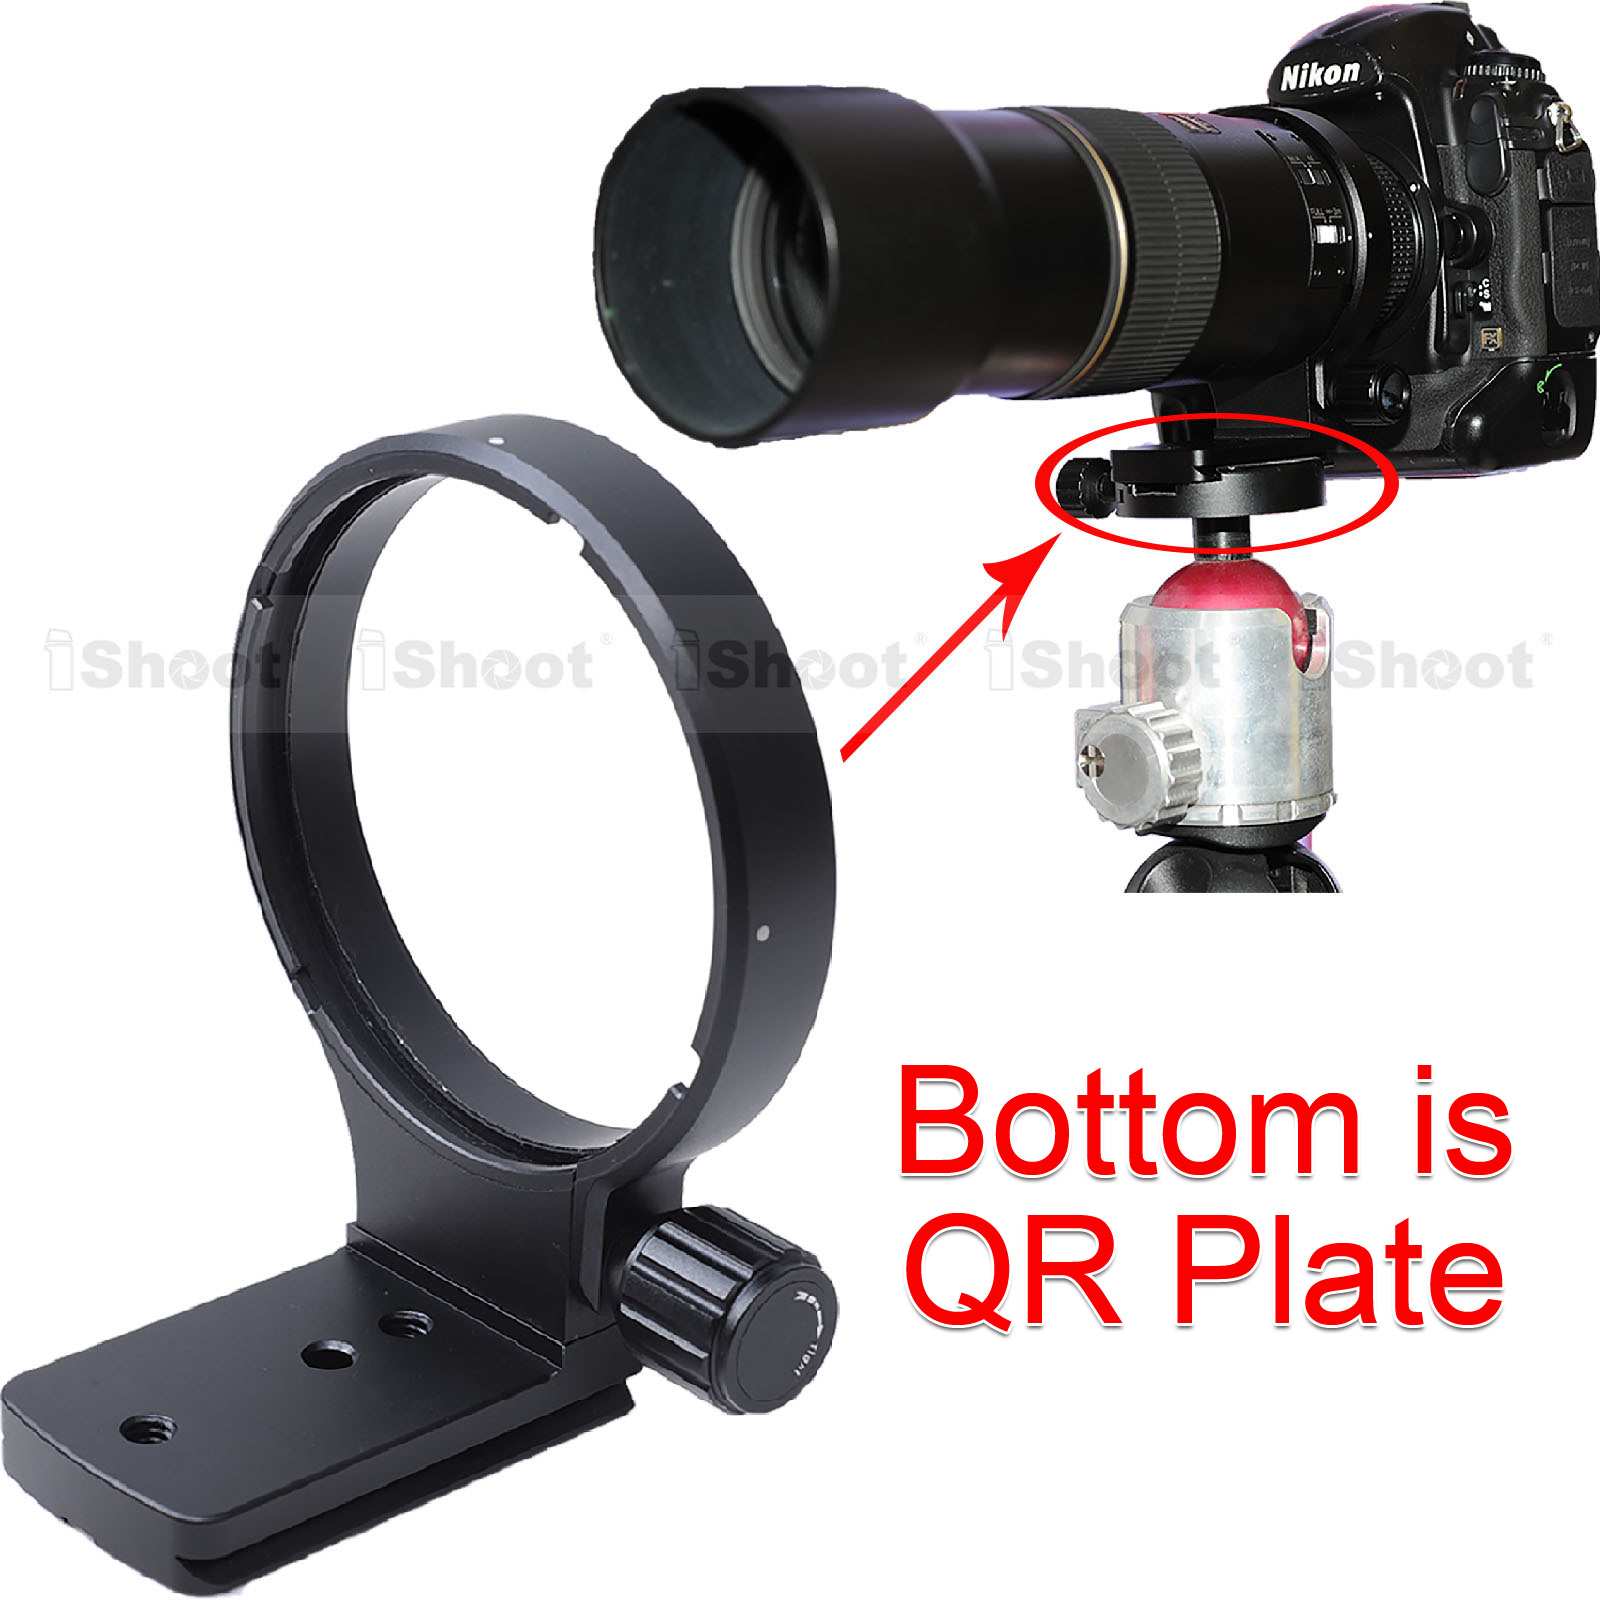 F250-38 SLR Camera Holder Telephoto Zoom Lens Bracket Set Long Camera Support Quick Release Plate Bird Watching for Camera DSLR Canons and Other DSLR Flashes Studio